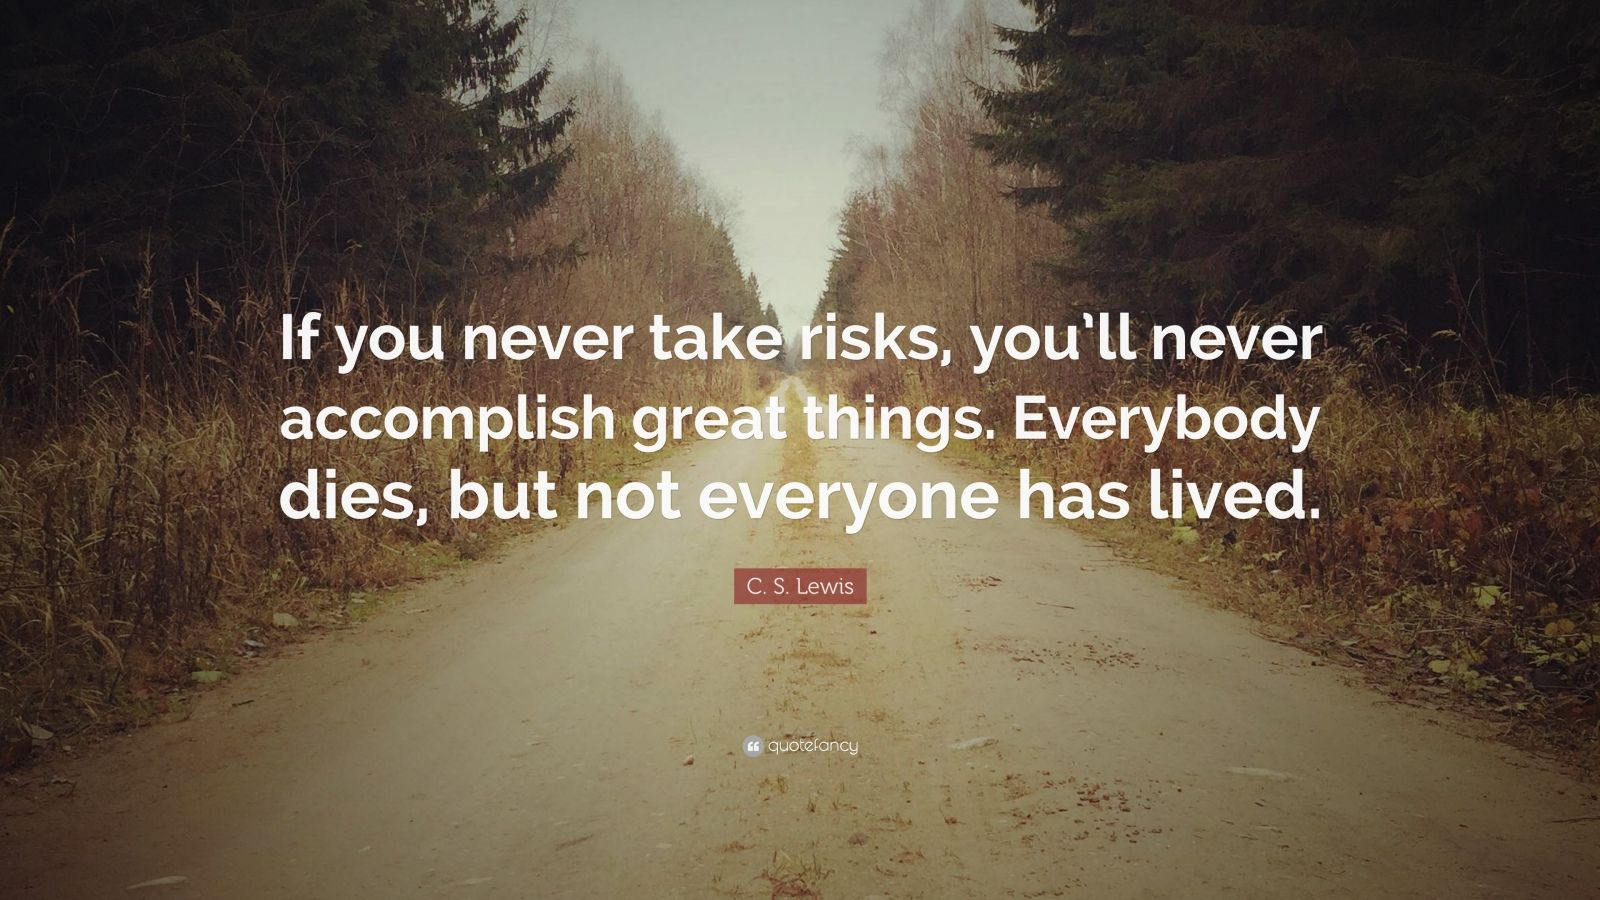 """C. S. Lewis Quote: """"If you never take risks, you'll never accomplish great things. Everybody dies, but not everyone has lived."""""""